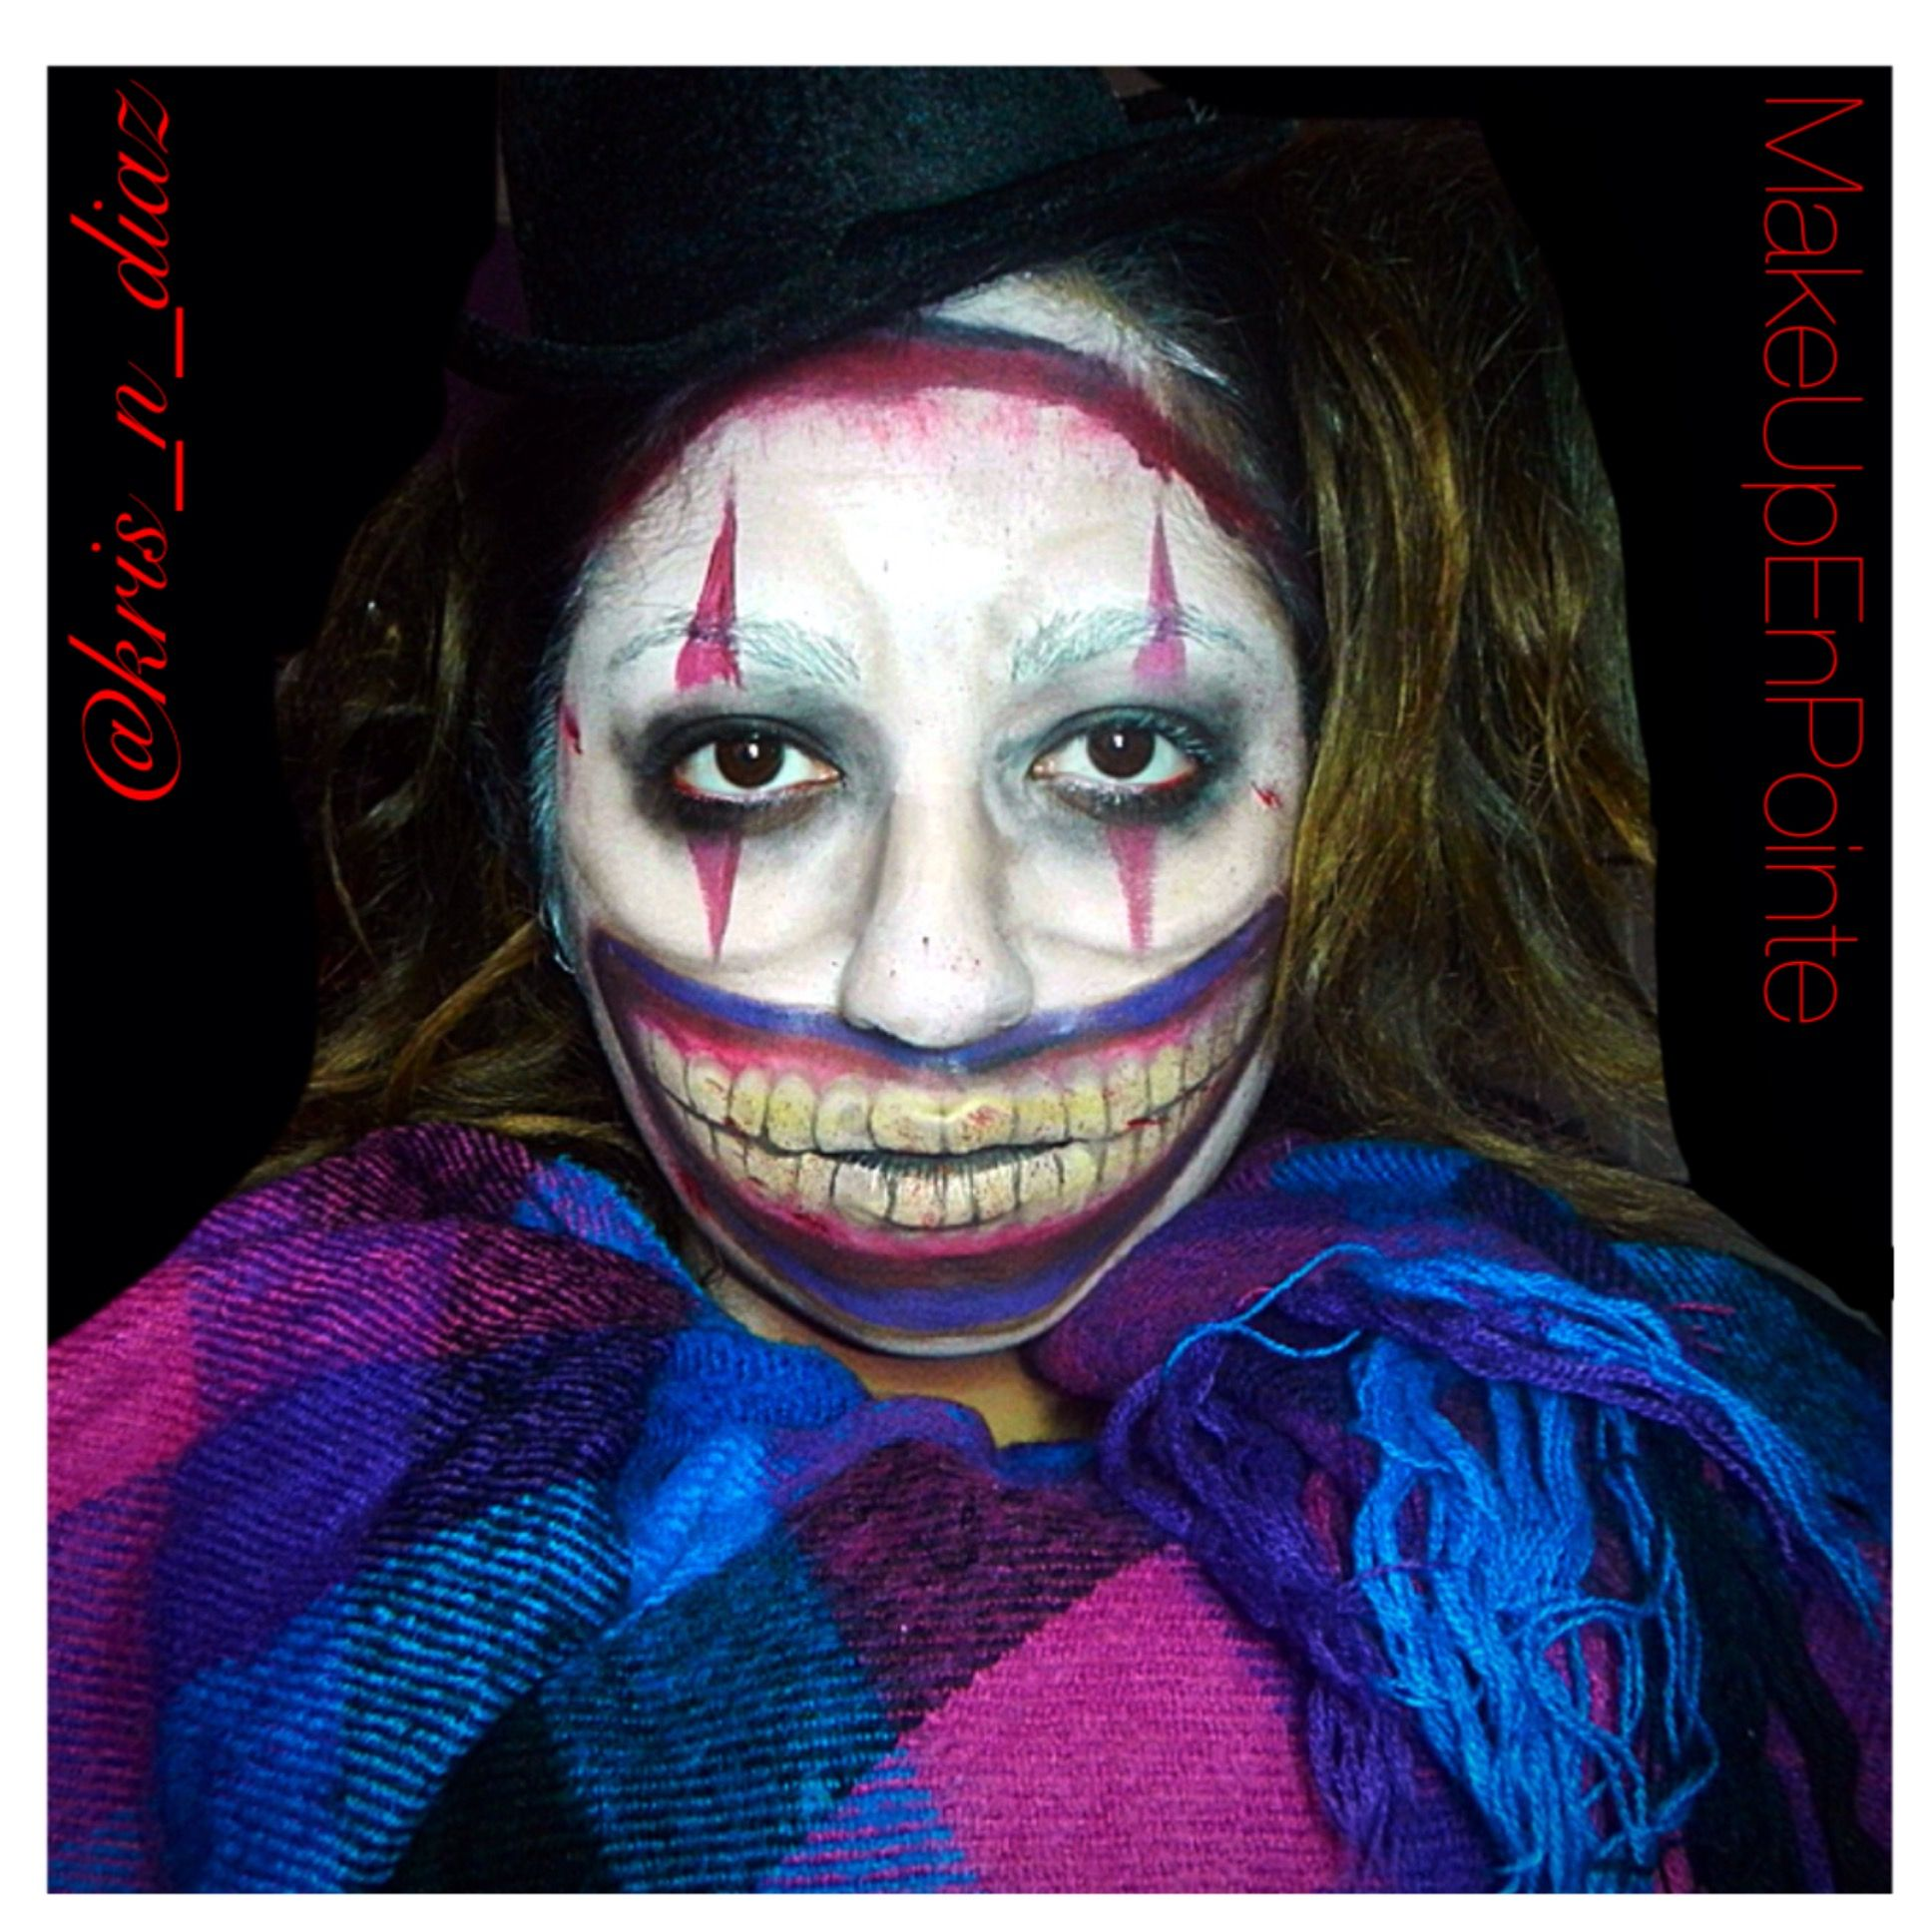 twisty the clown makeup from american horror story freak show here s the link to check